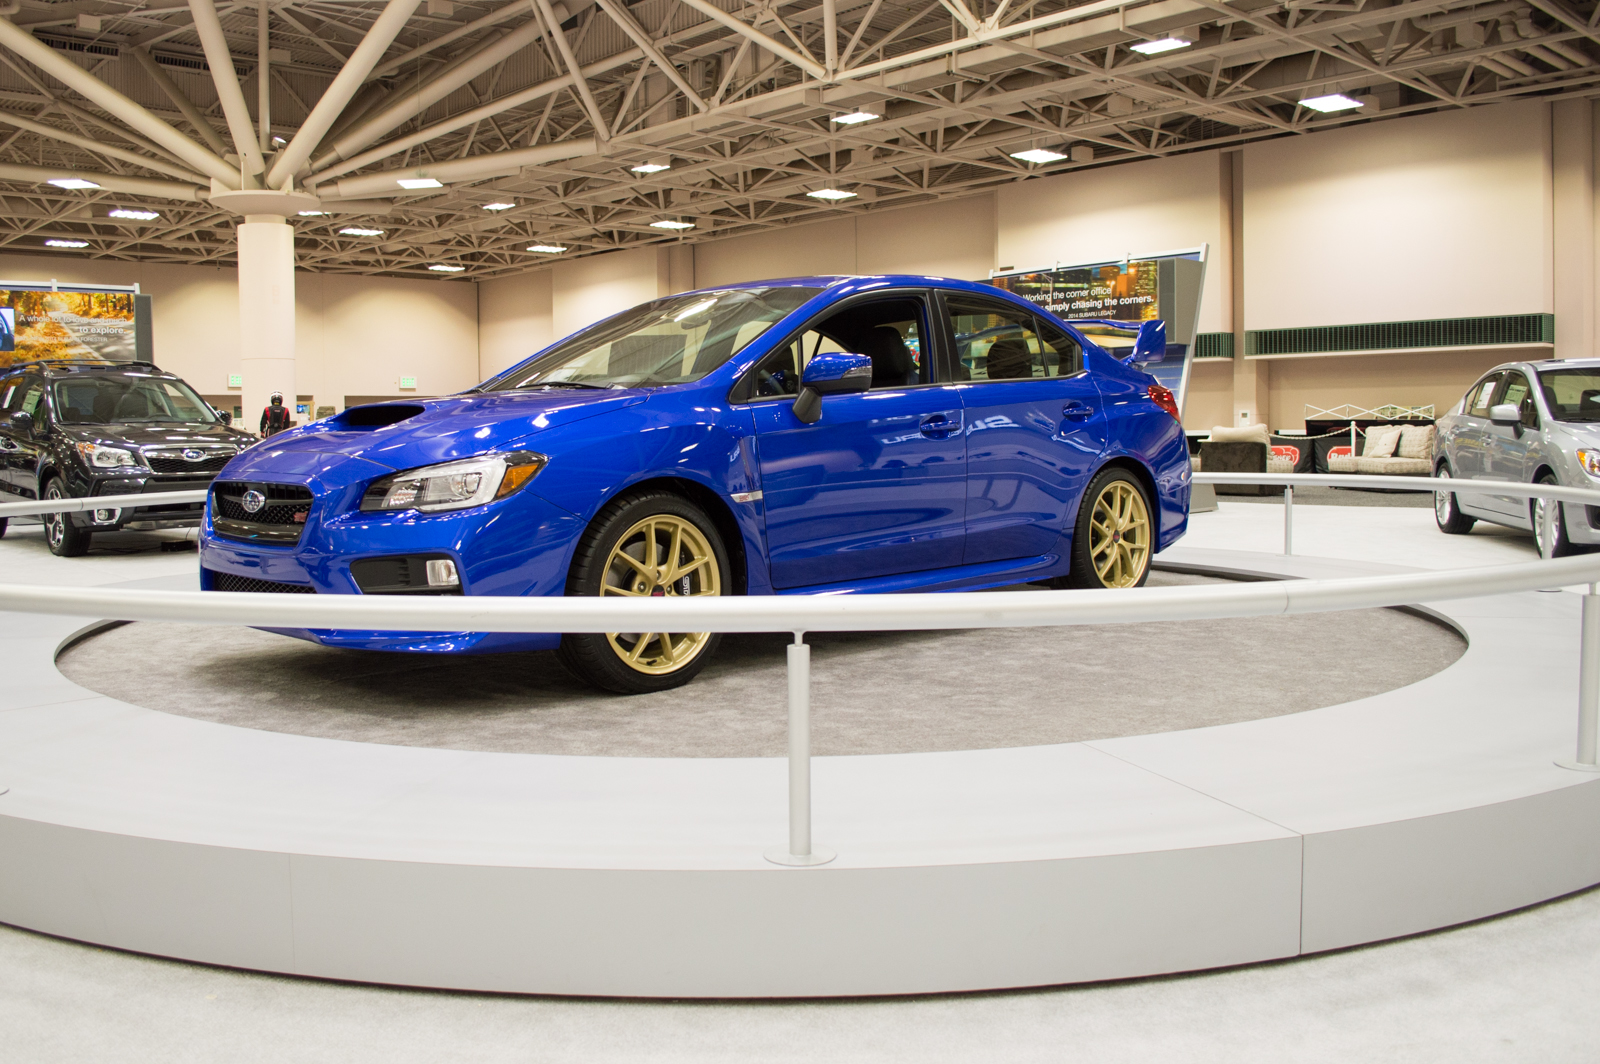 2015 subaru wrx sti launch edition twin cities auto show short shift. Black Bedroom Furniture Sets. Home Design Ideas